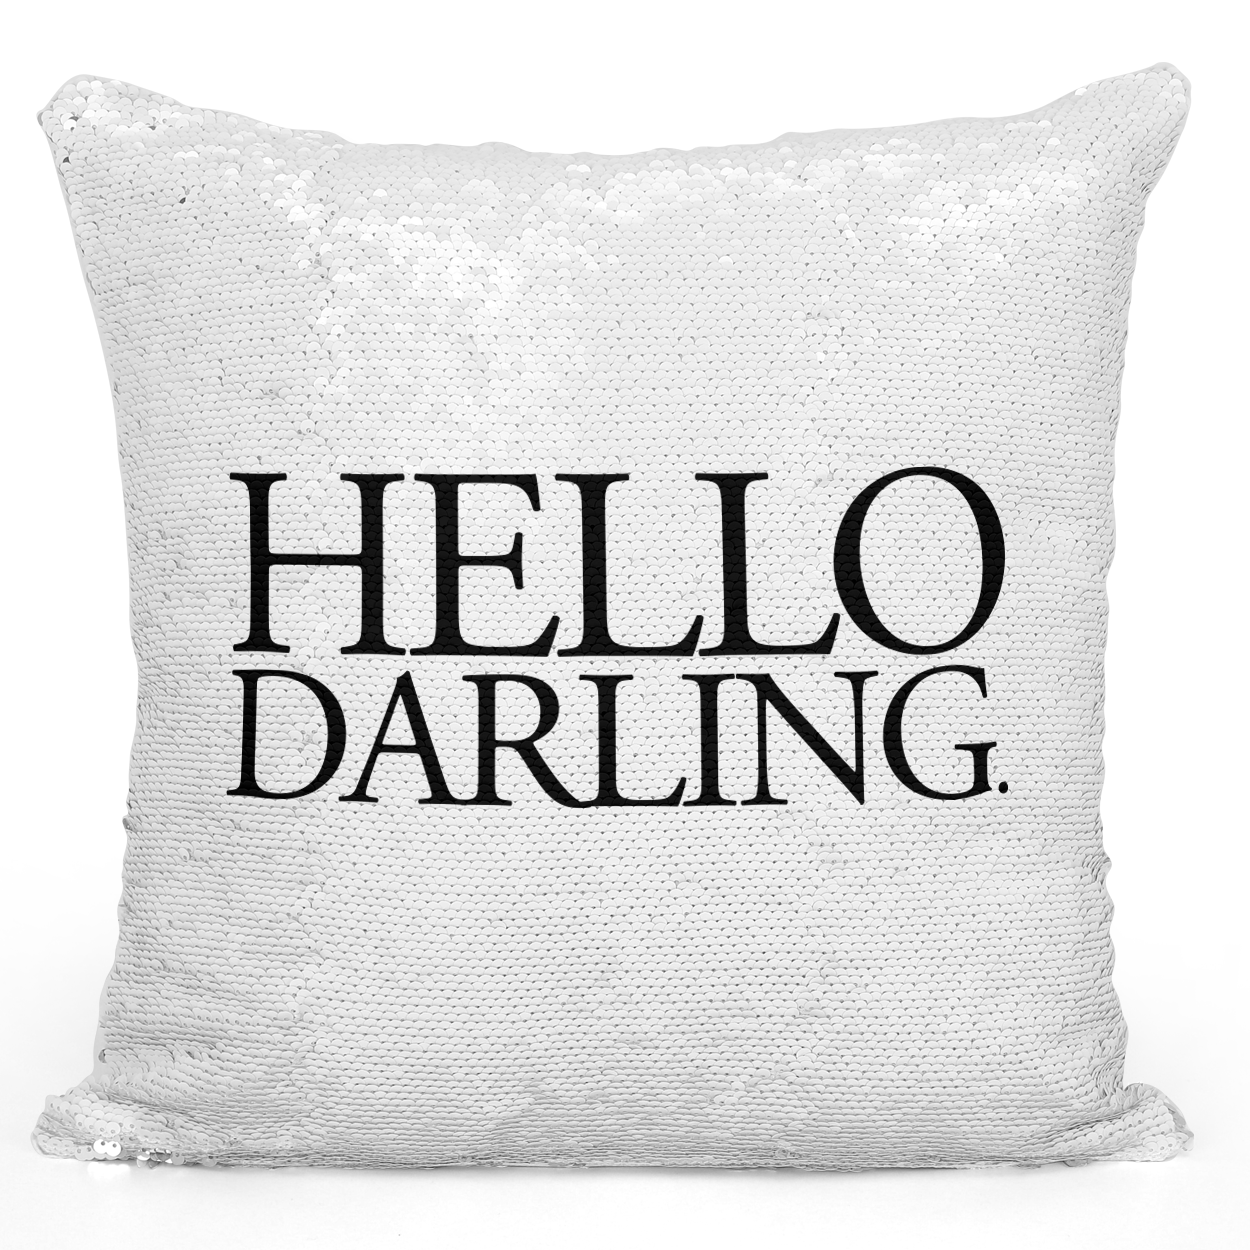 Sequin Pillow Magic Mermaid Throw Pillow Hello Darling - Durable White 16 x 16 inch Square Home Office Decor Accent Pillow Loud Universe